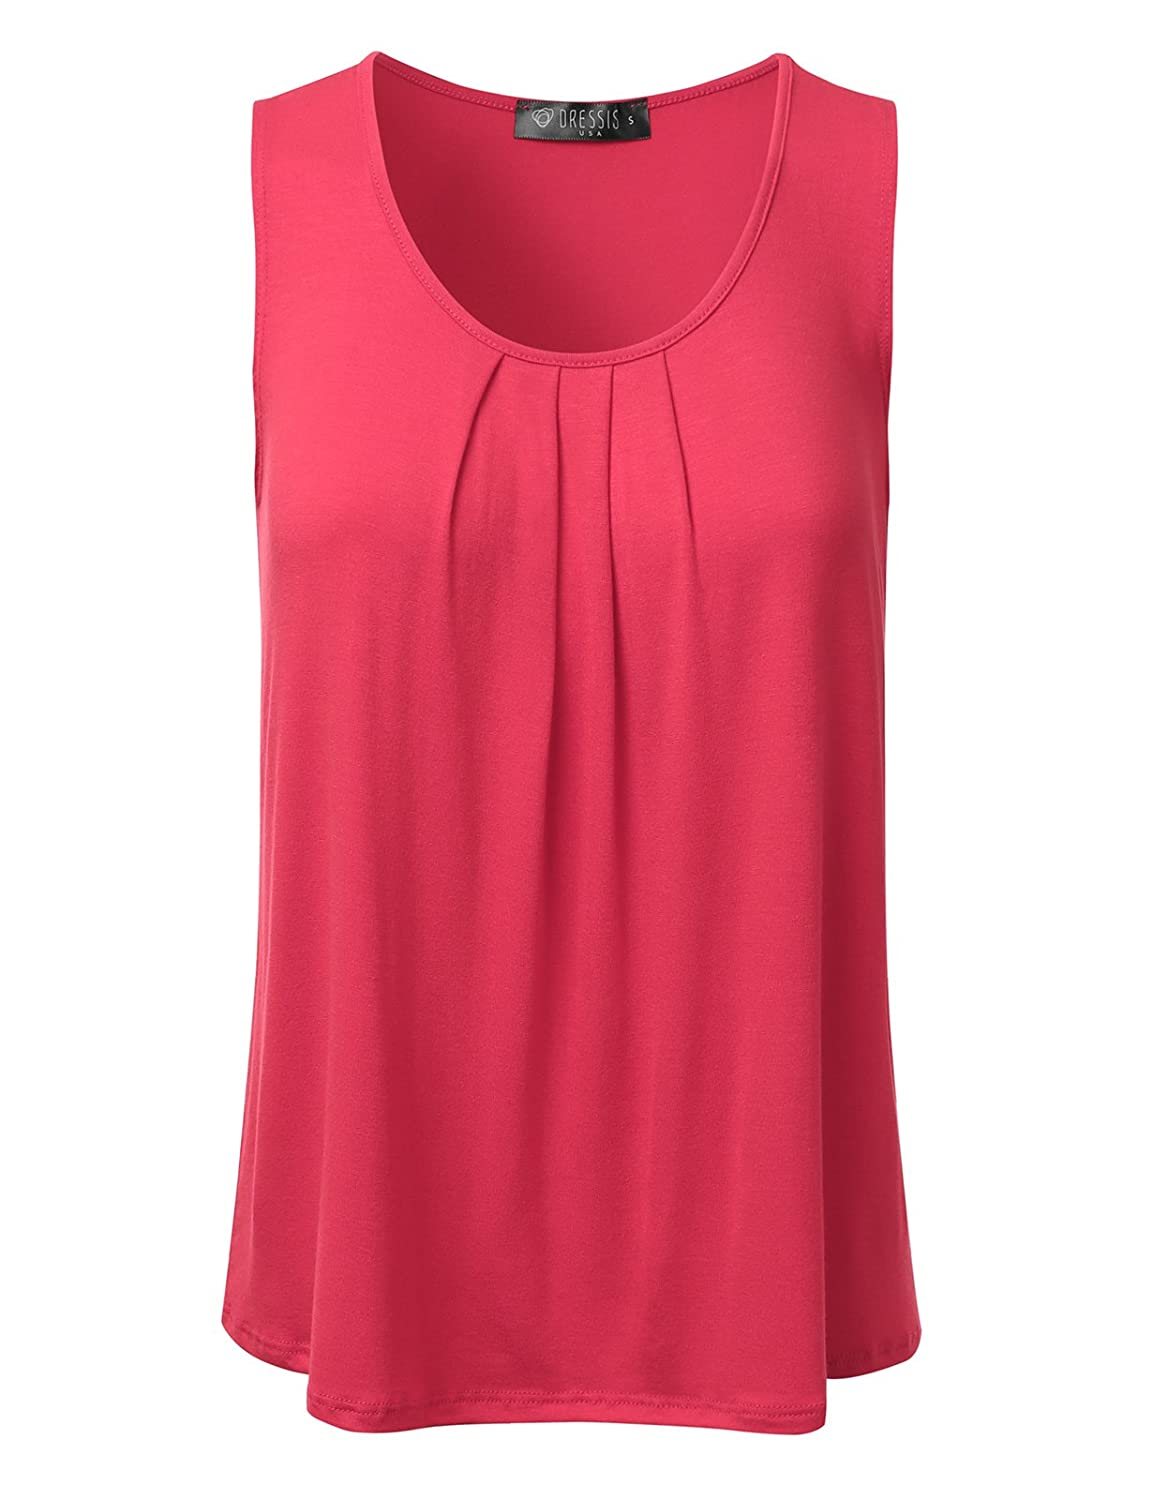 19b5c8eaf2 Simply designed Pleated Sleeveless Tank Top which is basic but stylish. /  Trendy and elegant item which is suitable for any occasion. Women's Premium  ...